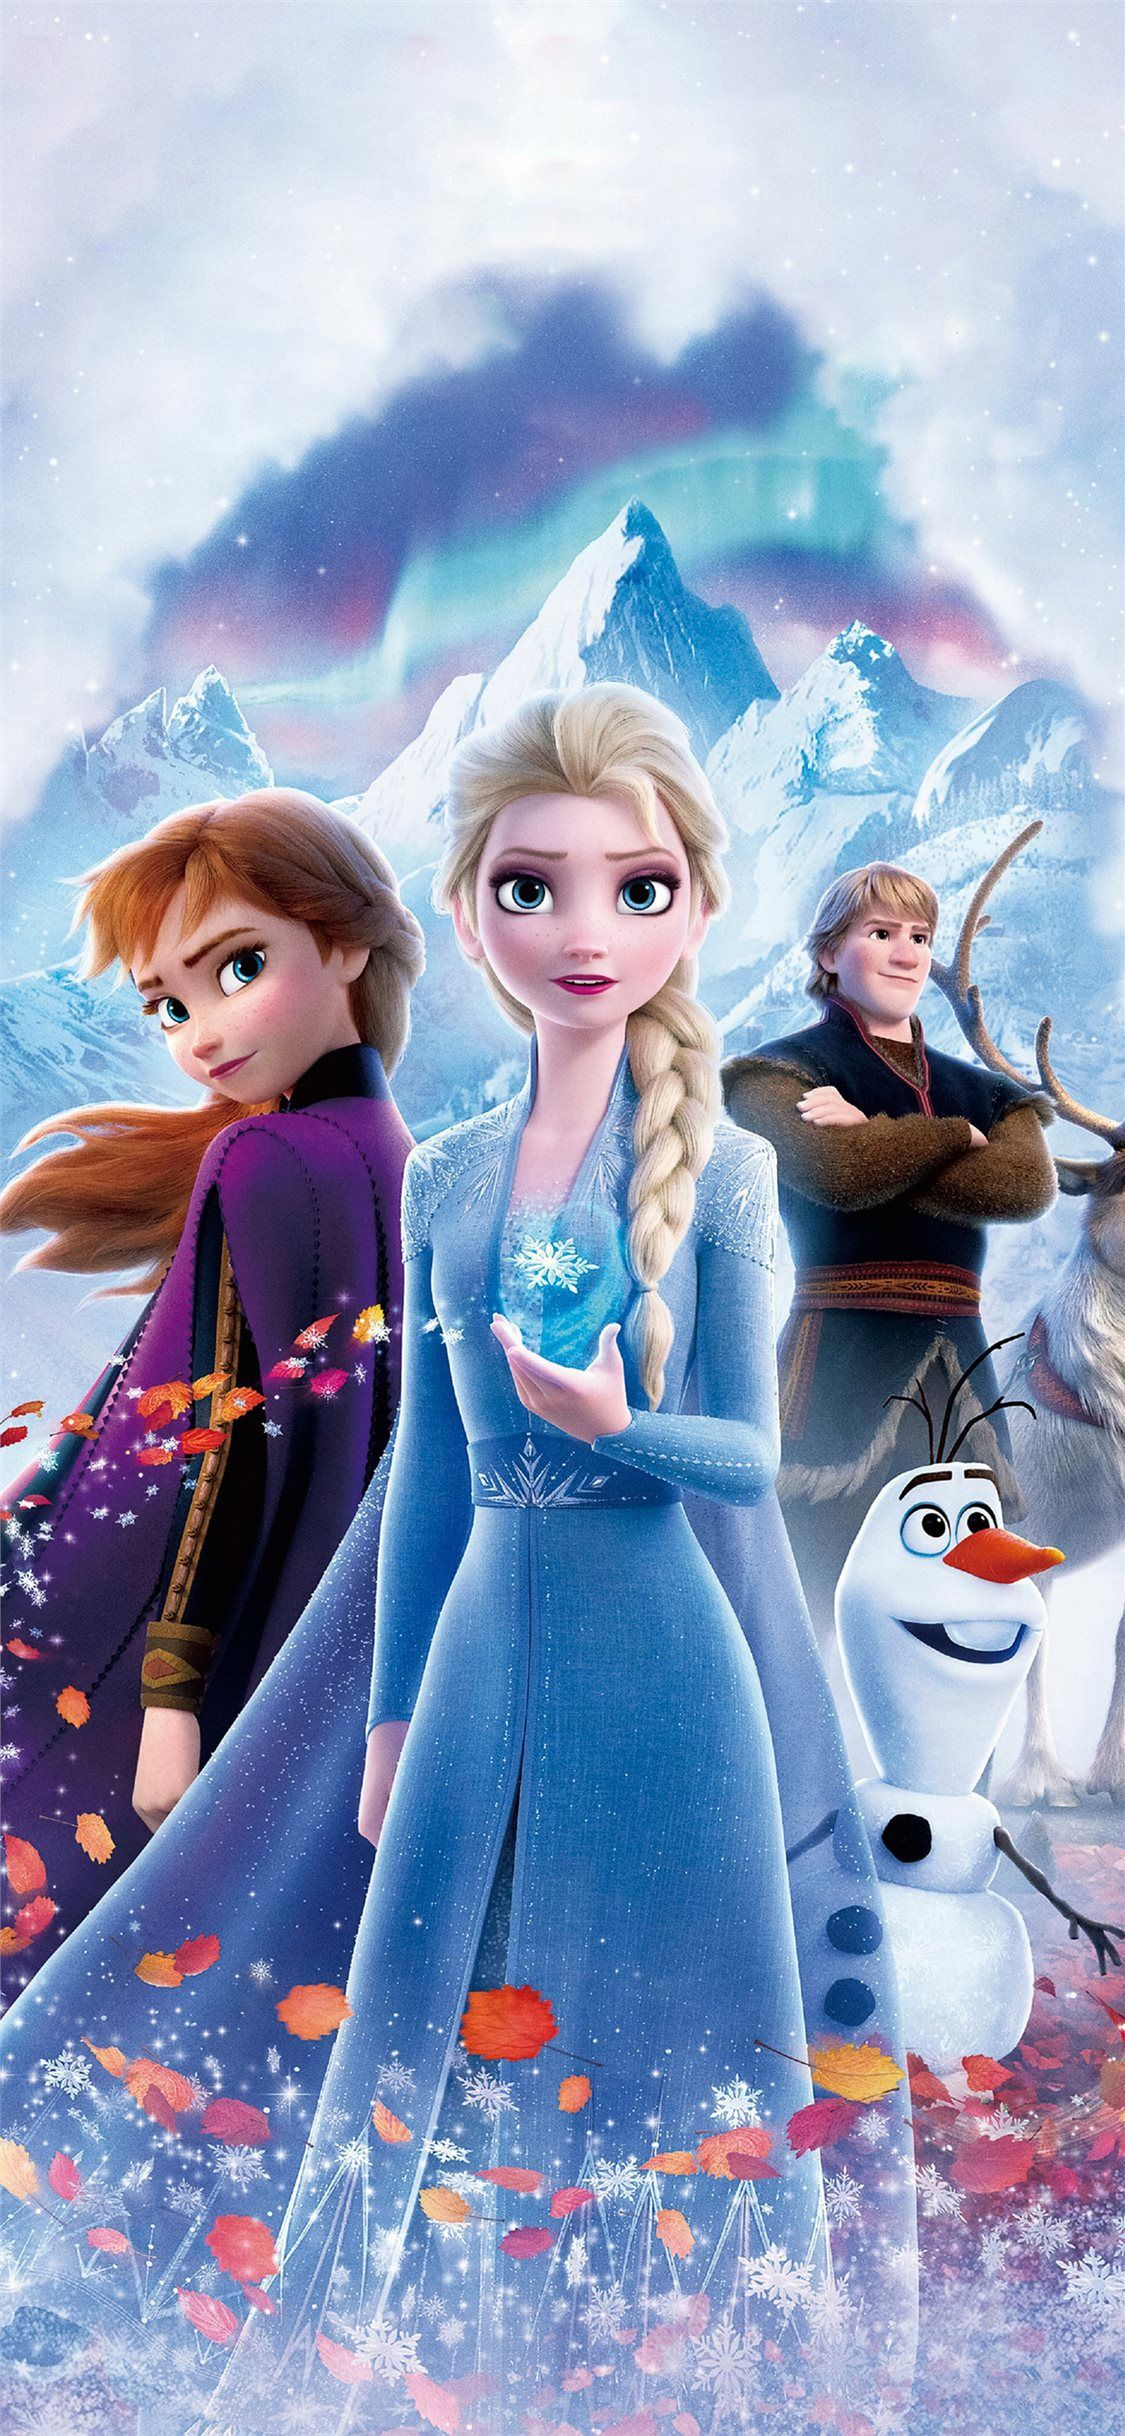 Wallpaper Frozen 2 – How To Fix The Freezing On Your Samsung Galaxy S